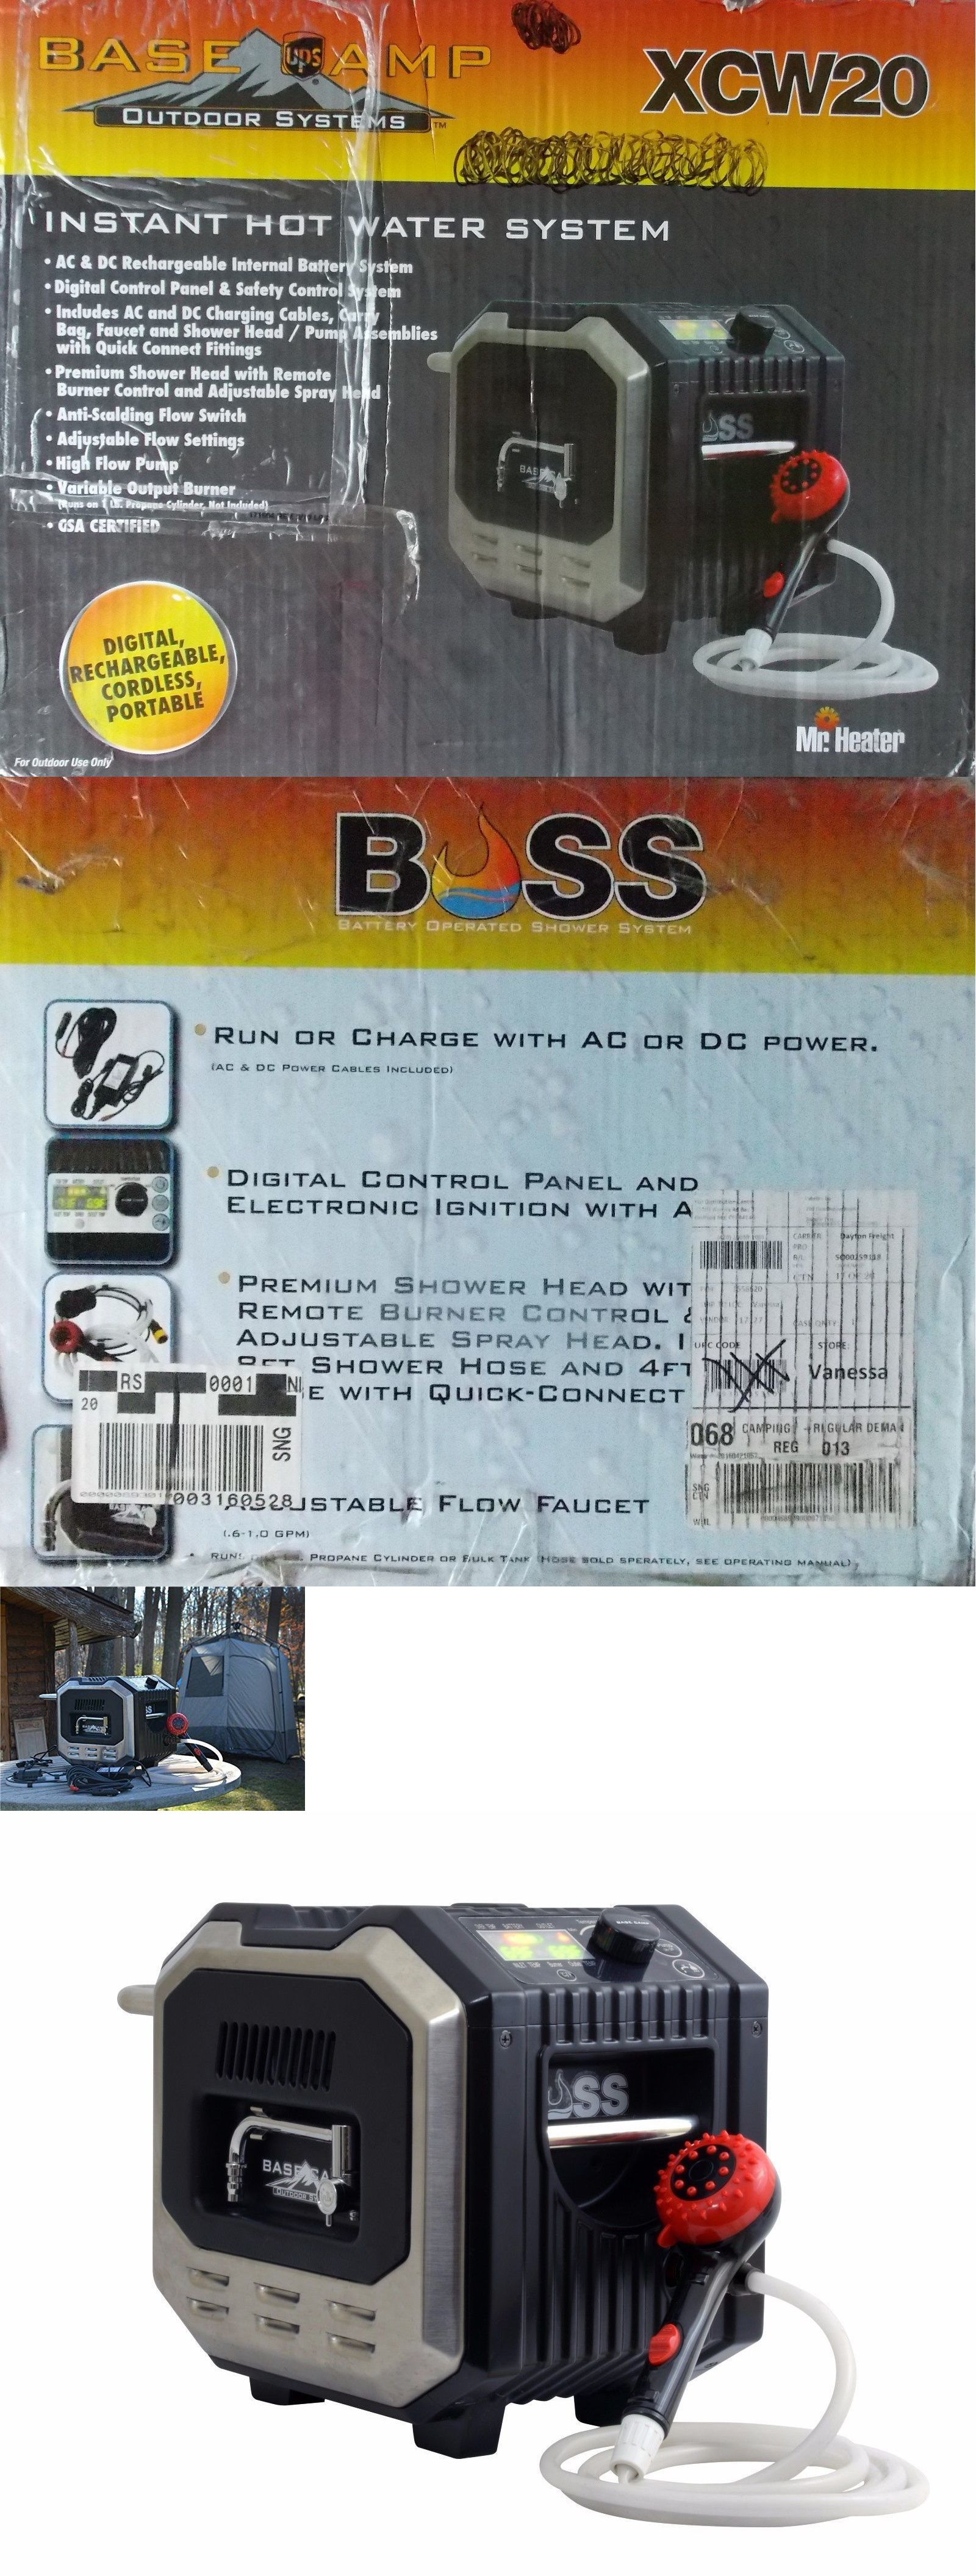 Hot Water Heater Accessories Portable Showers And Accessories 181396 Mr Heater Boss Instant